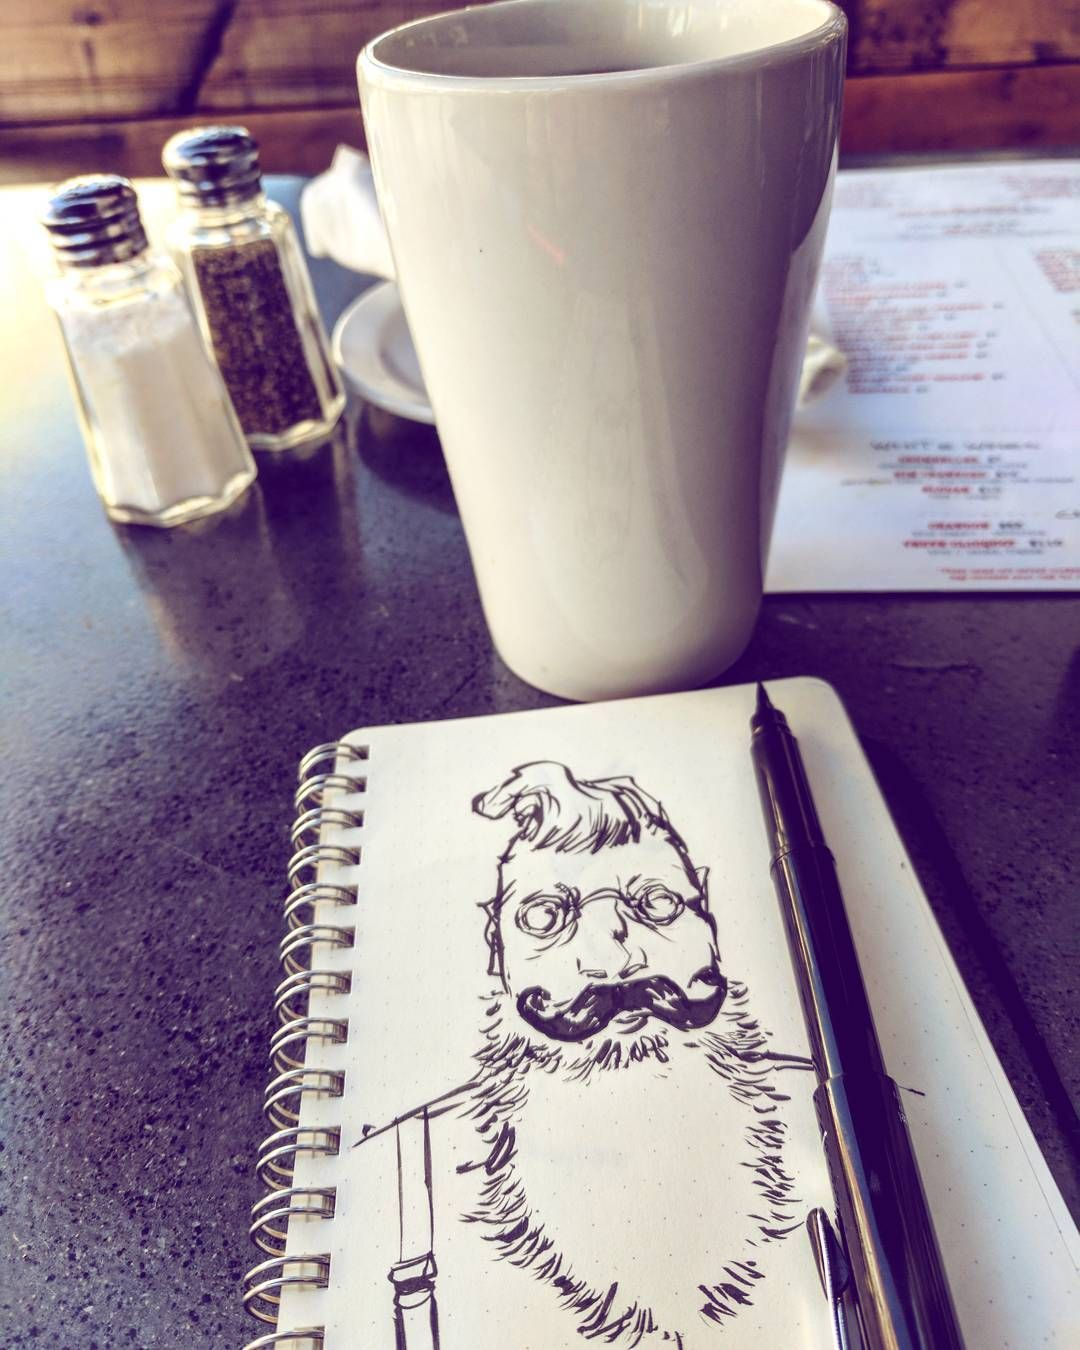 #drinkanddraw today is black #coffee and a #doodle #sketch of a beady-eyed beardy guy with suspenders.  #art #drawing